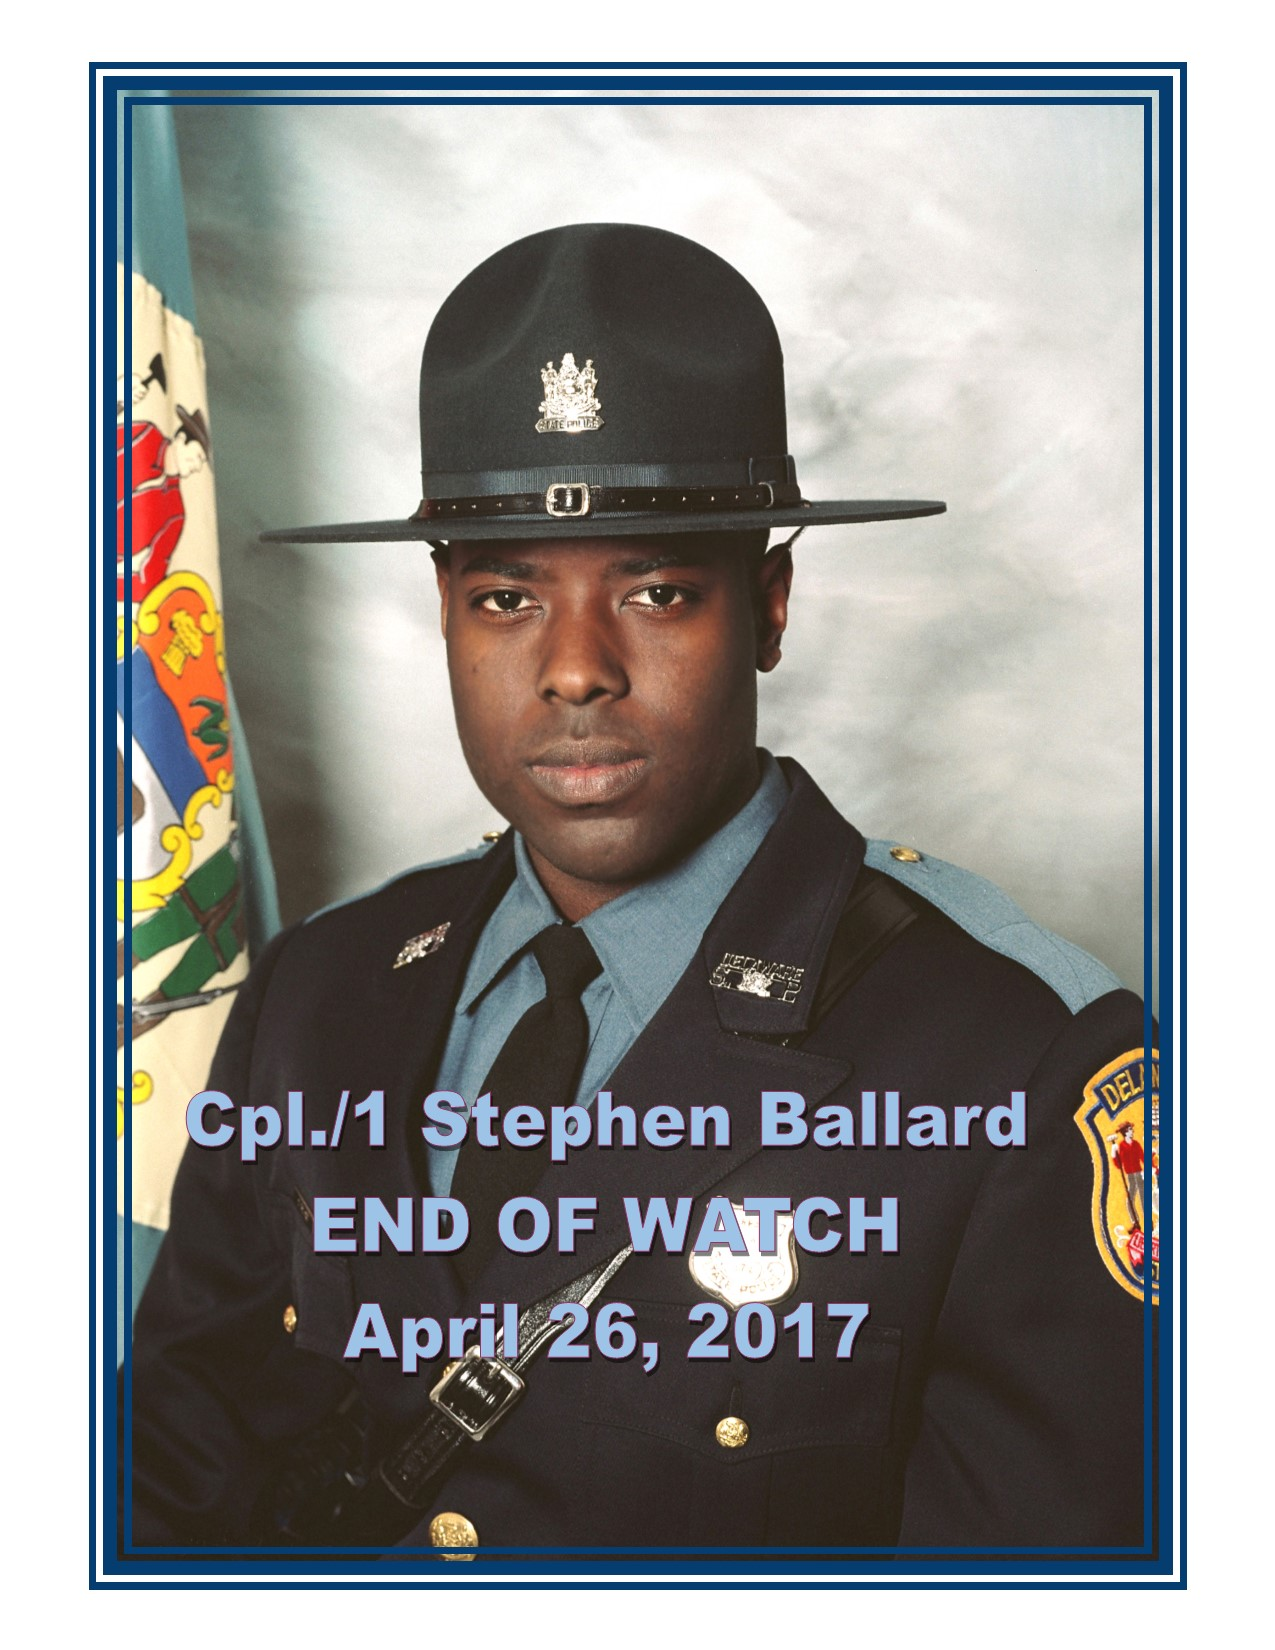 Delaware State Police Trooper Corporal First Class Stephen Ballard - End of Watch - April 26, 2017